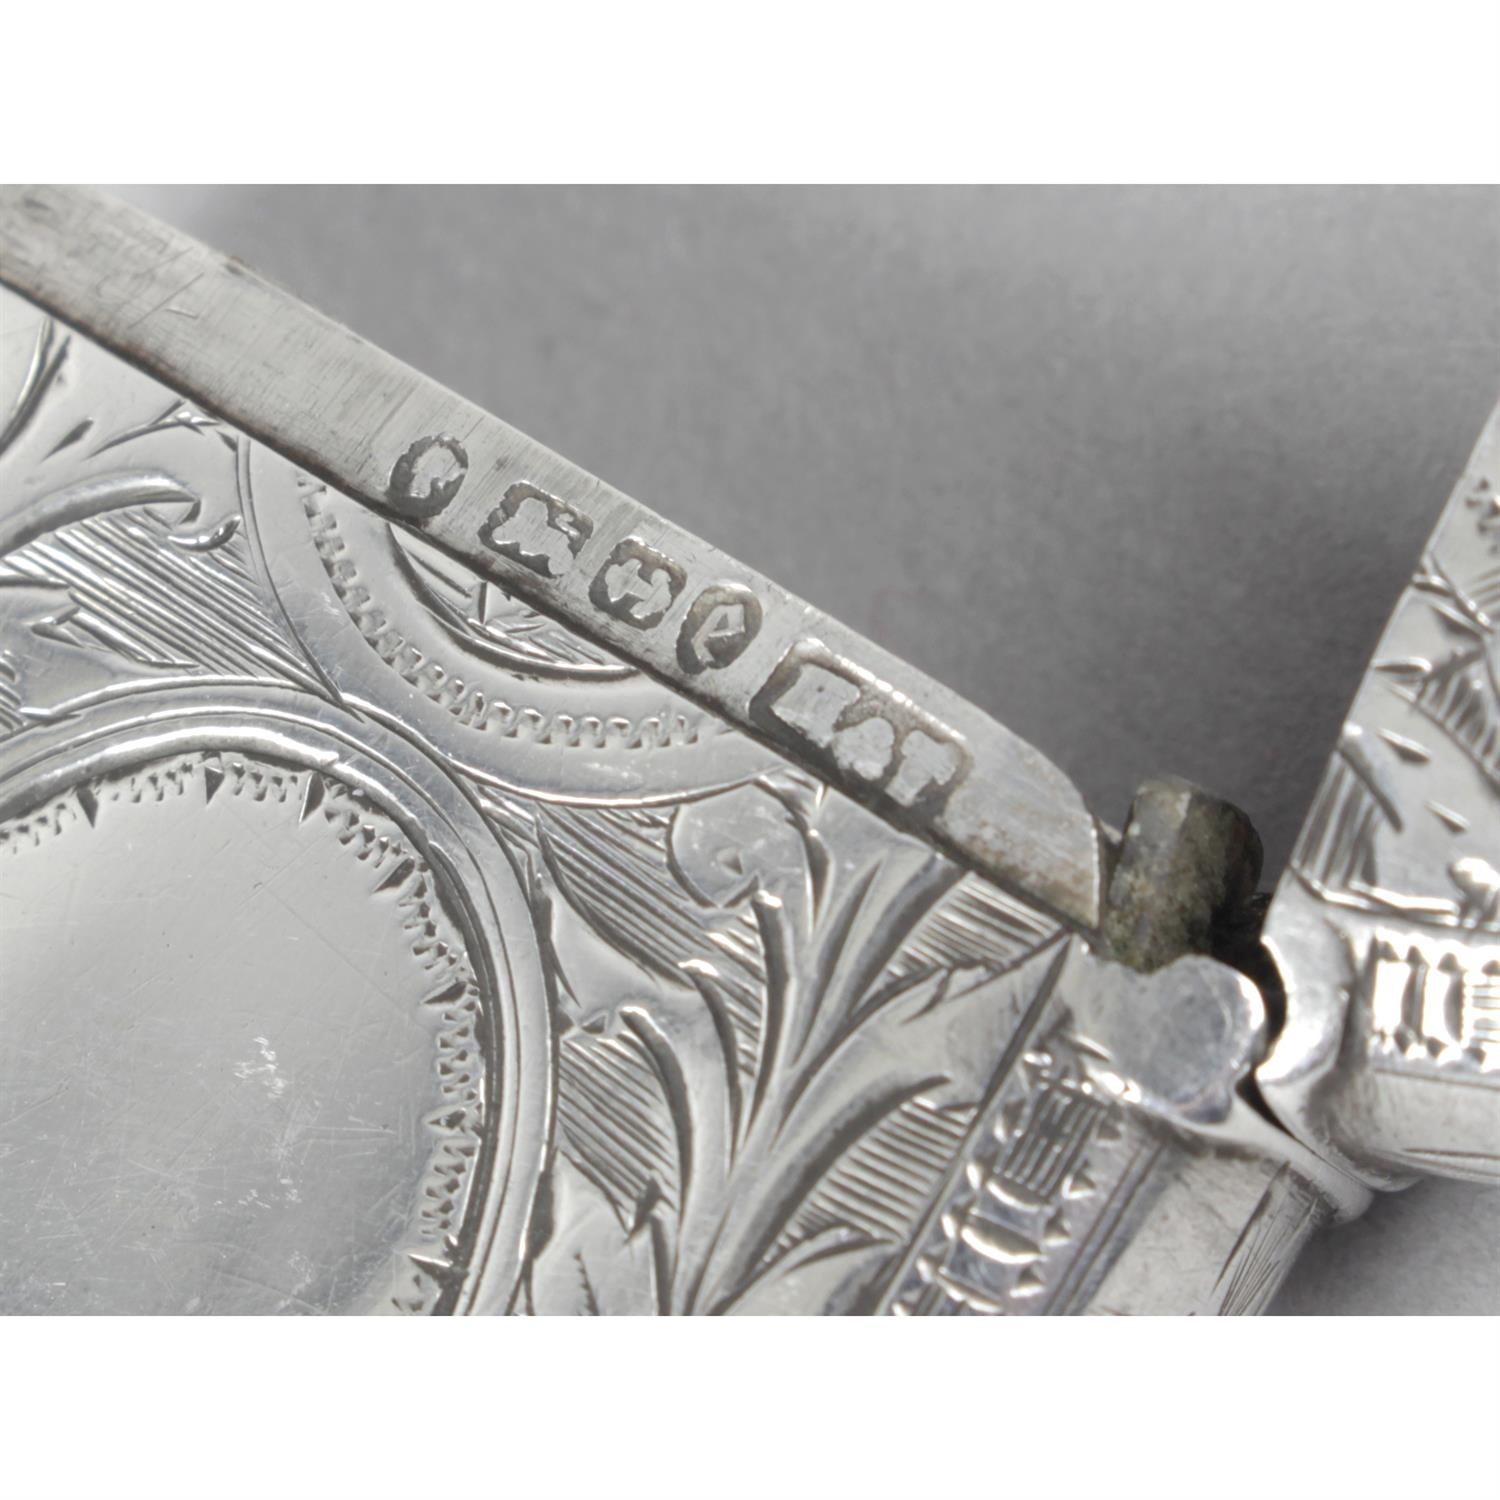 Three late Victorian silver vesta cases, with floral and foliate engraving. (3). - Image 3 of 4